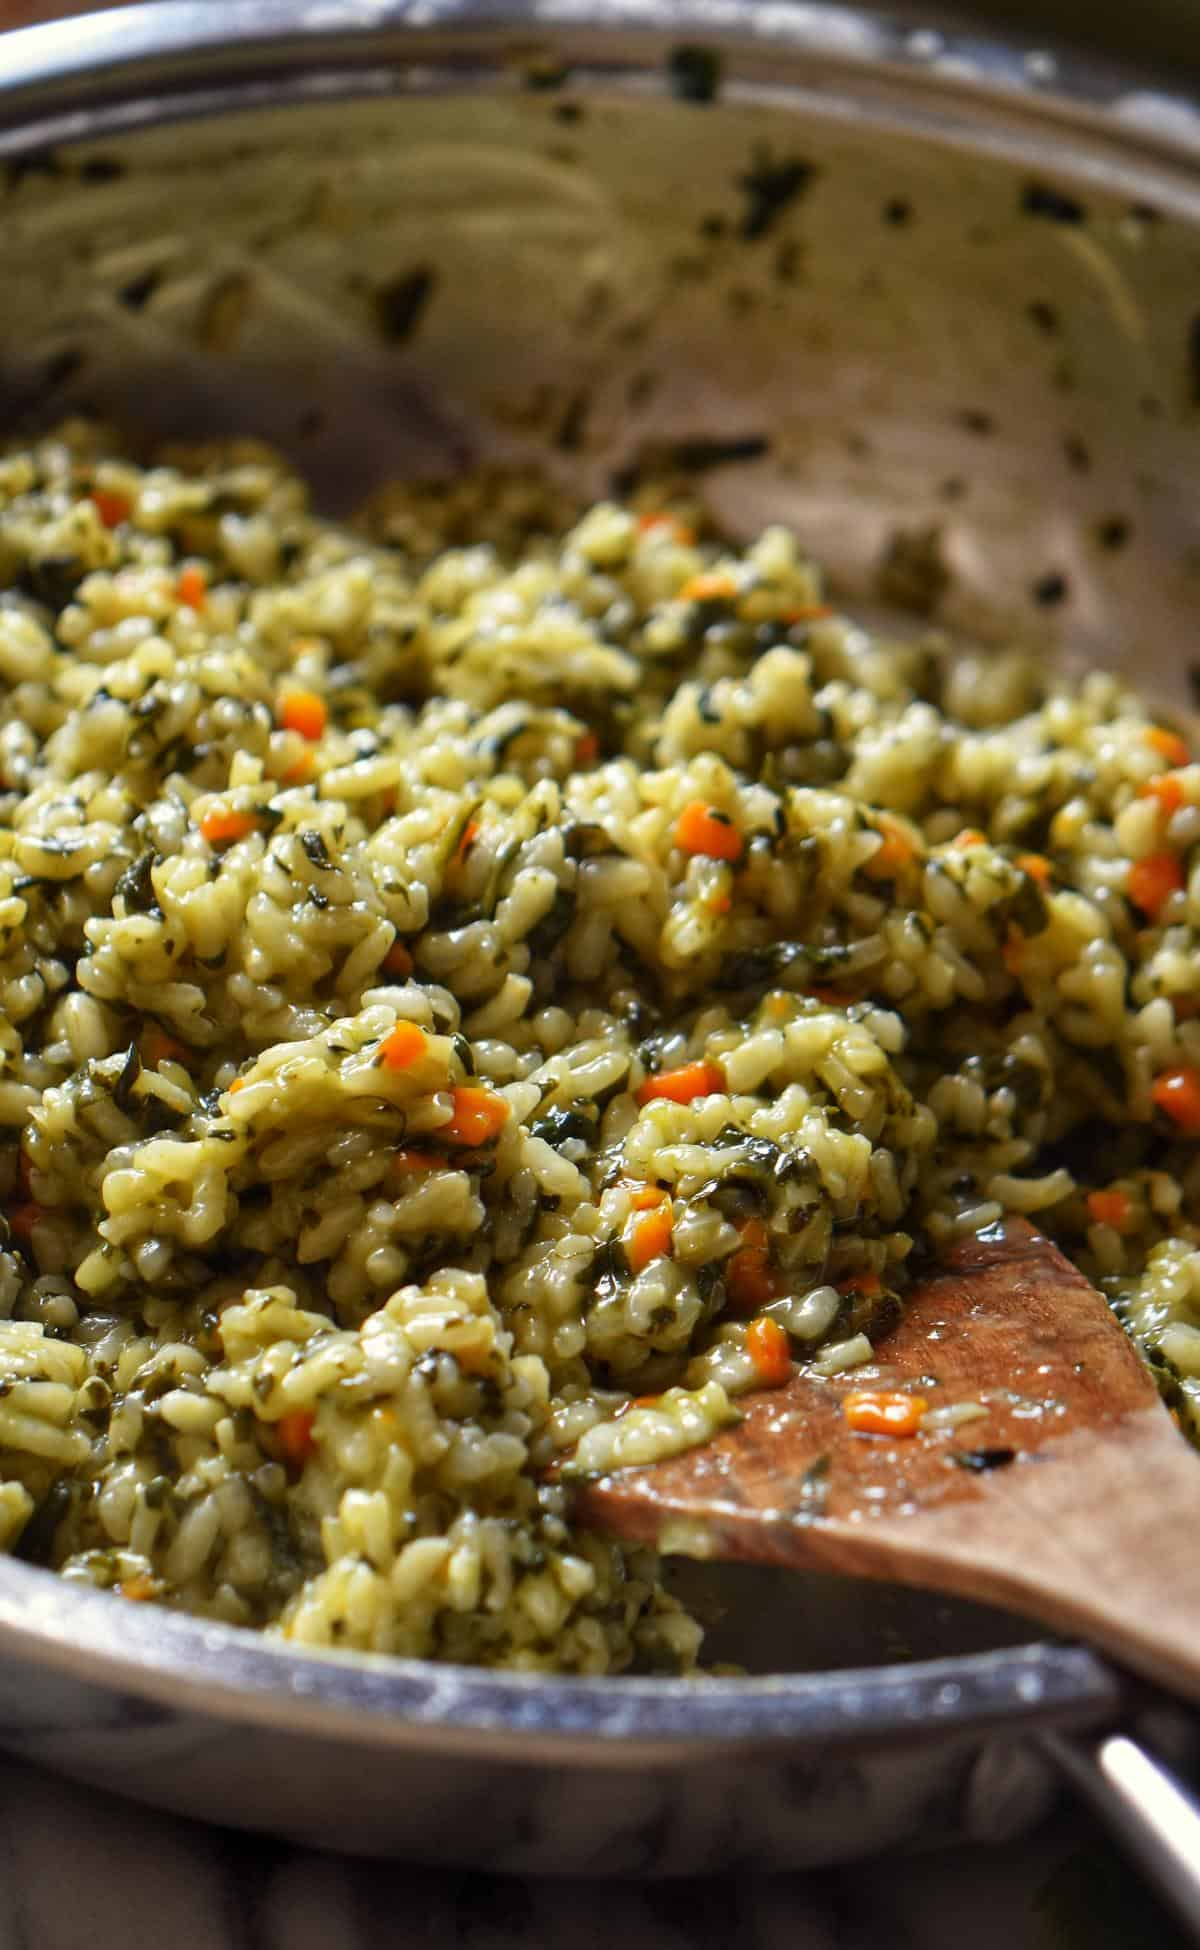 A large saucepan of spinach risotto.